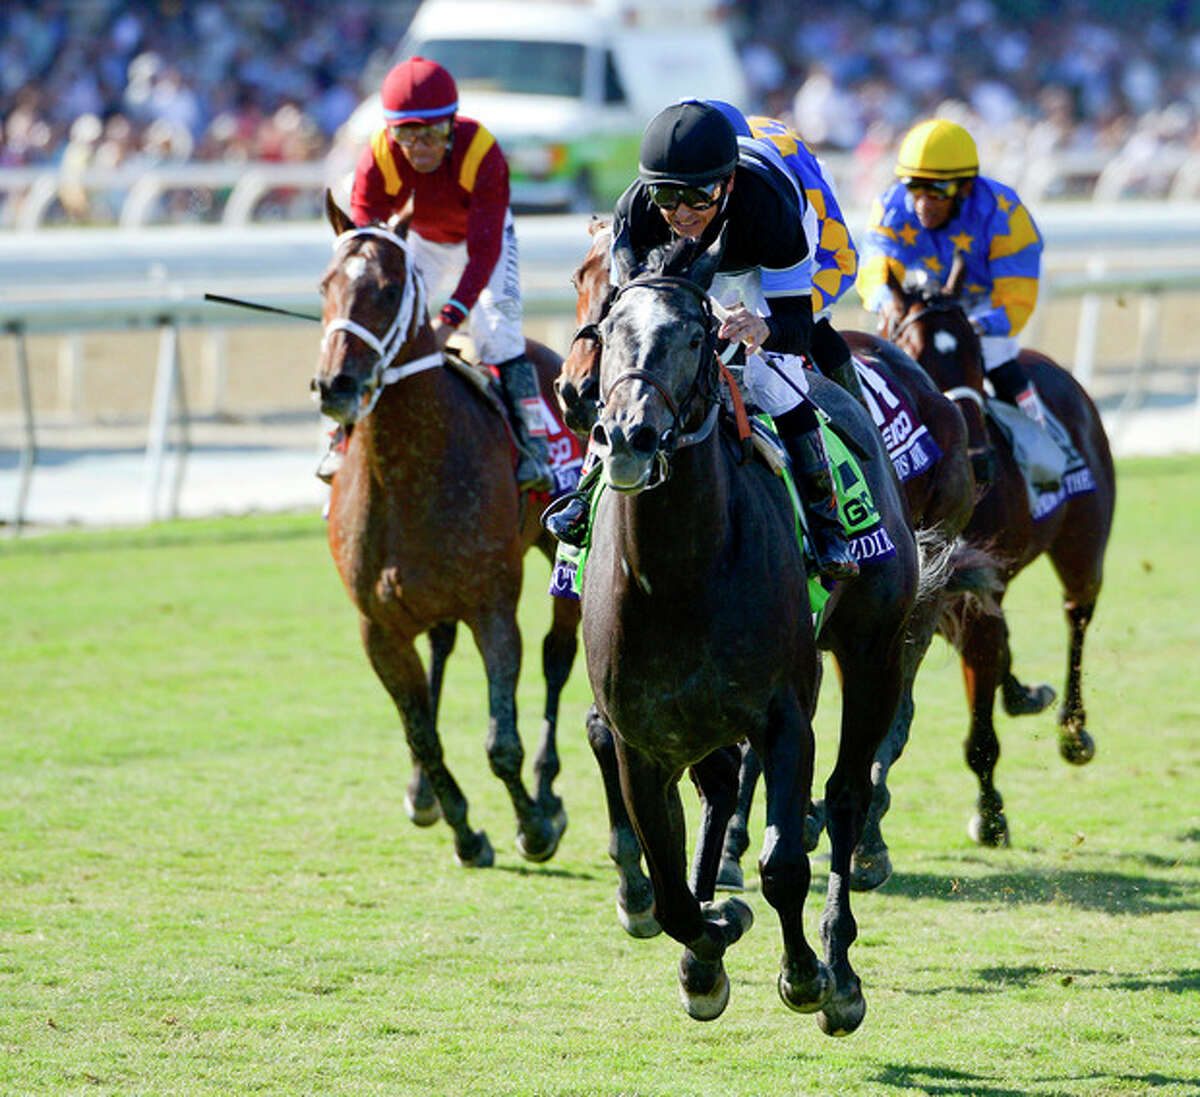 Jockey Mike Smith rides Mizdirection to a first place finish in the Breeders' Cup Juvenile Fillies horse race at Santa Anita Park Saturday, Nov. 2, 2013, in Arcadia, Calif. (AP Photo/Mark J. Terrill)